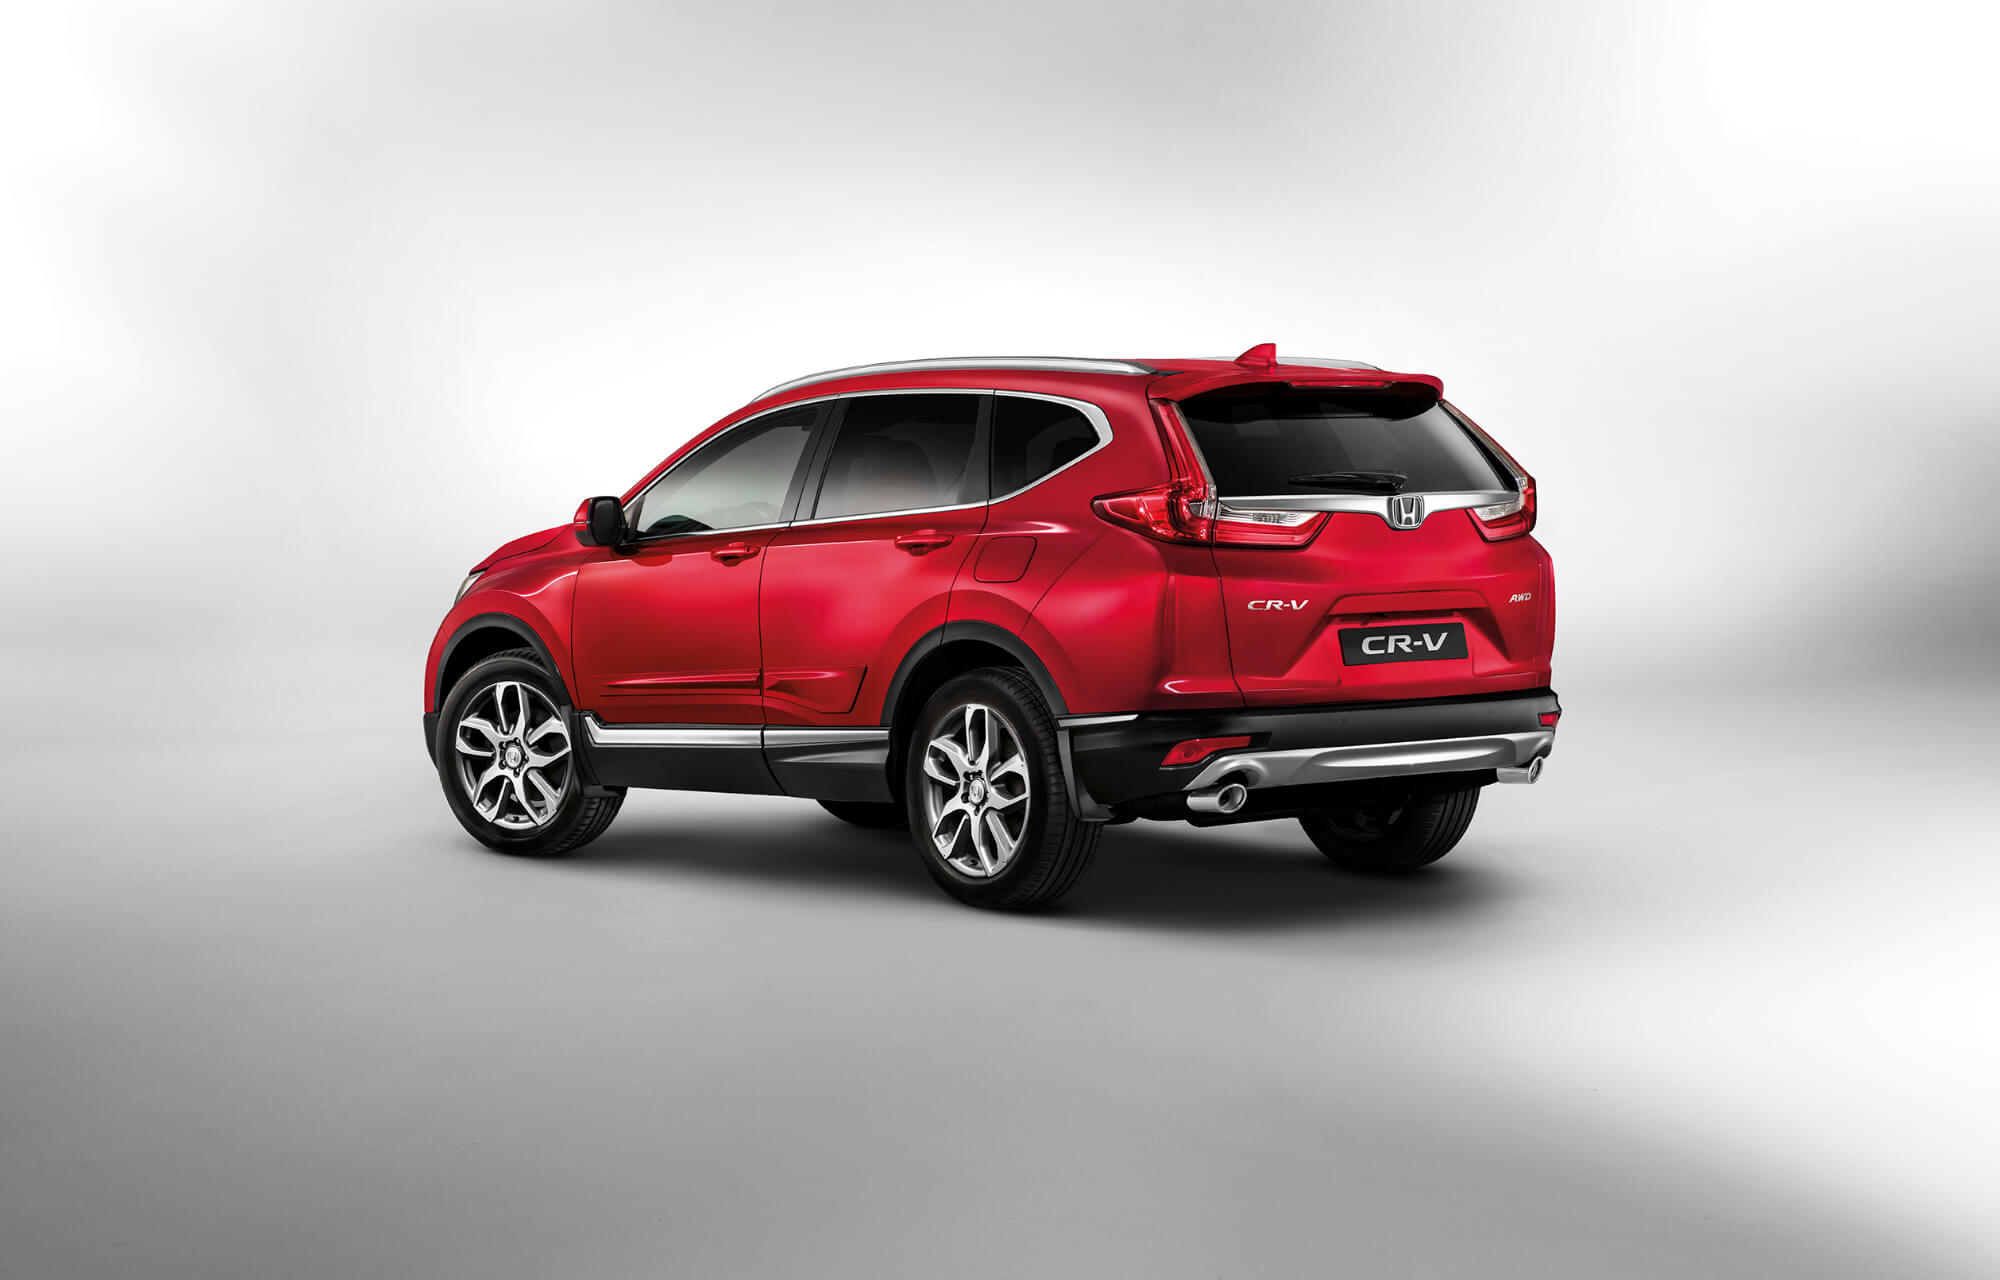 CR-V Convenience Pack